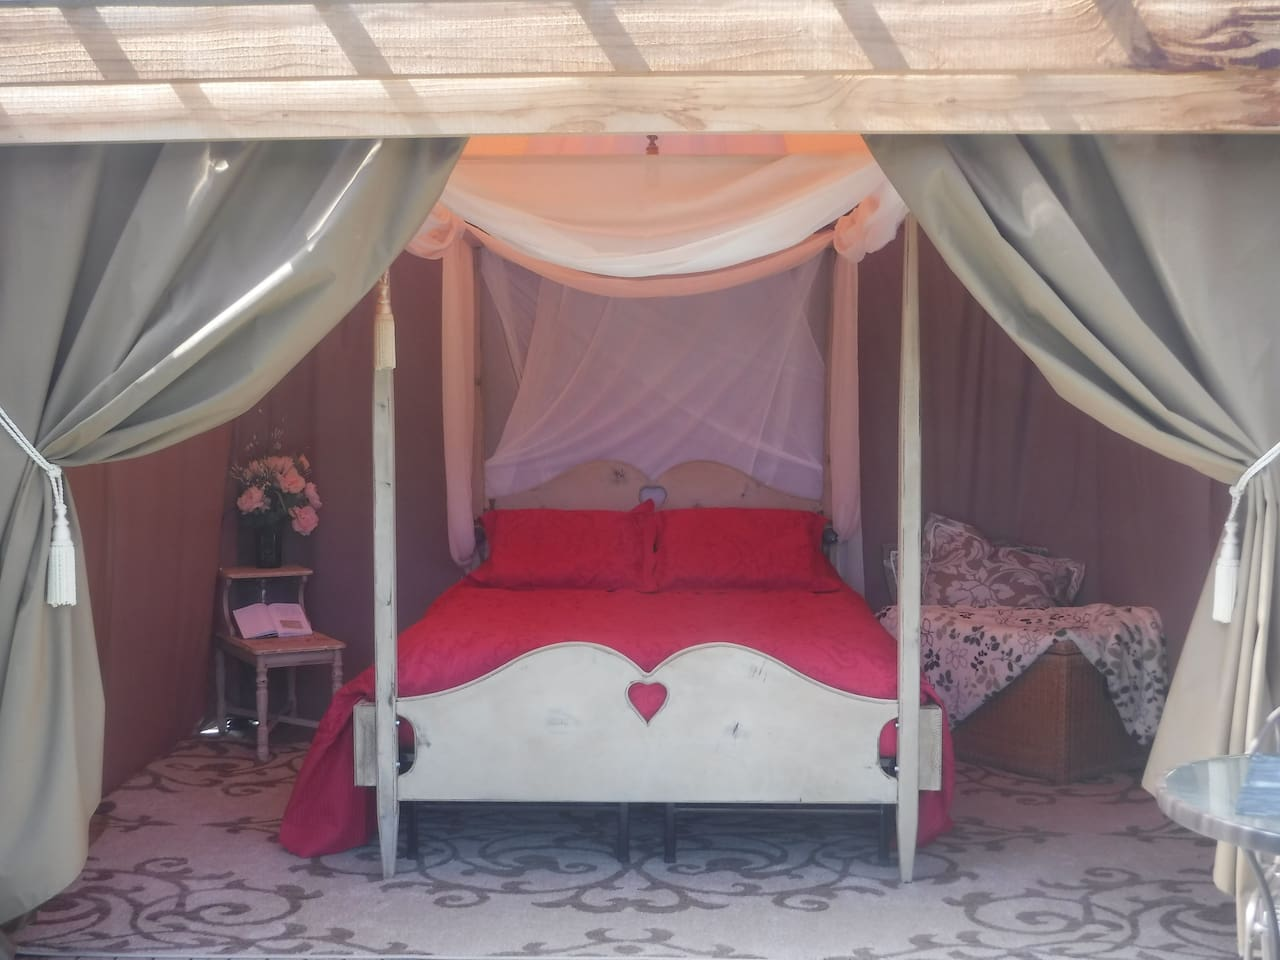 Always looking to improve your glamping experience, we have upgraded the bed and added new linens and pillows for  the new season.